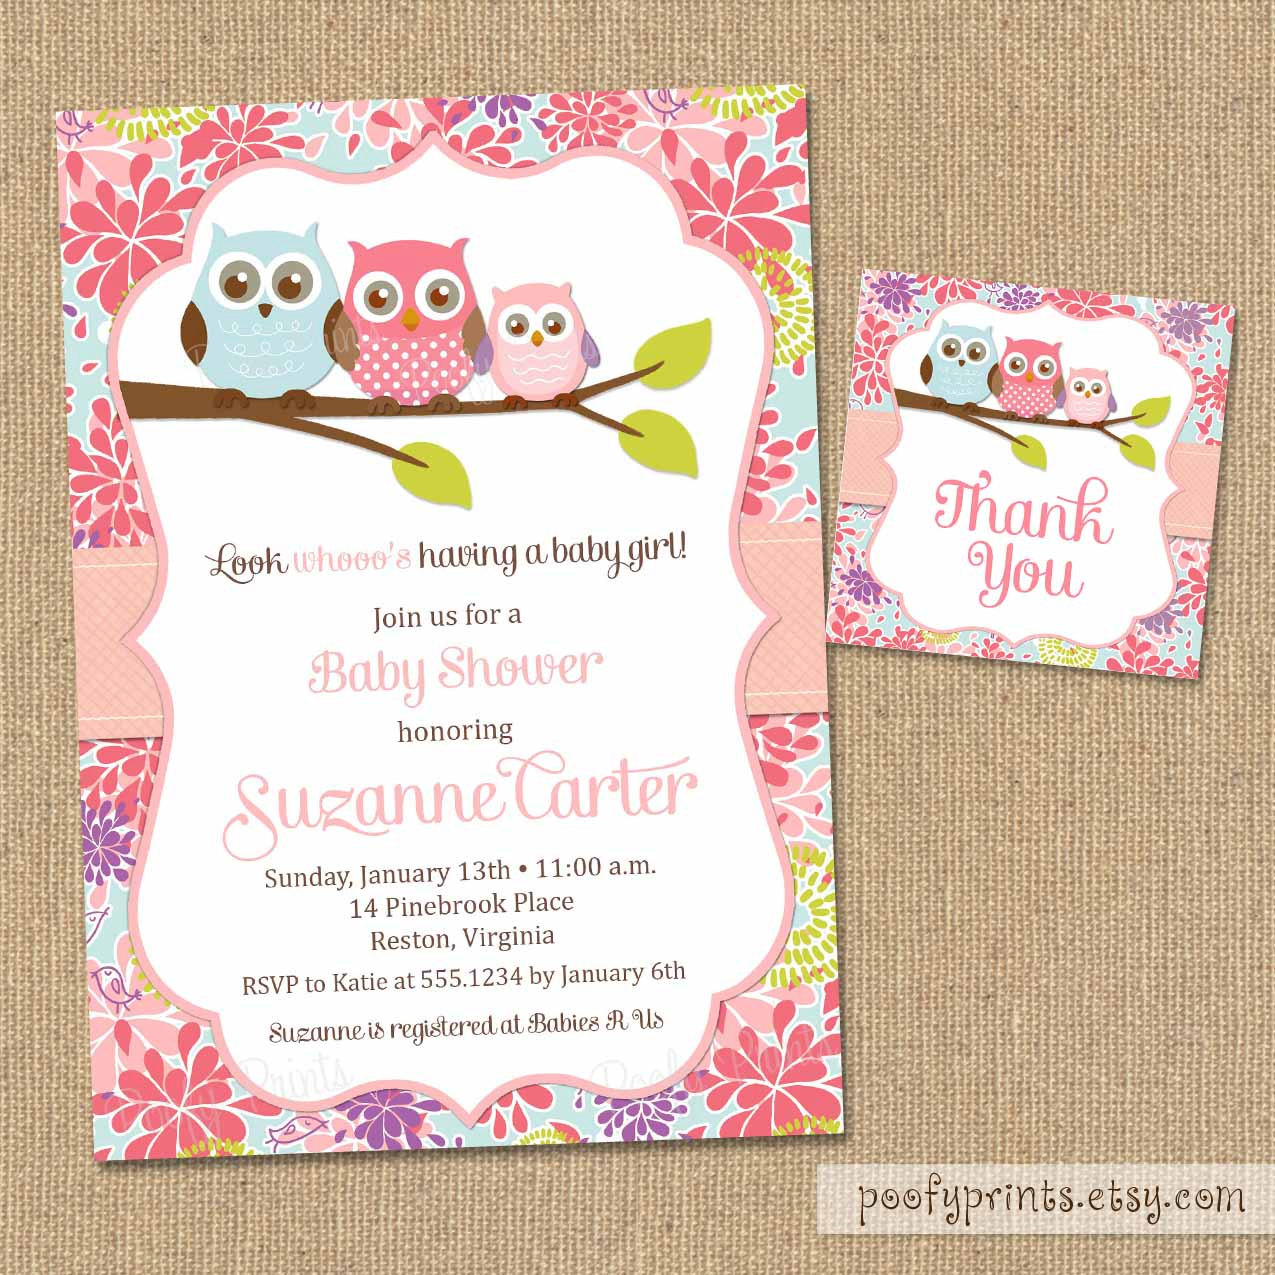 Baby shower invitations dc print baby shower invitations filmwisefo